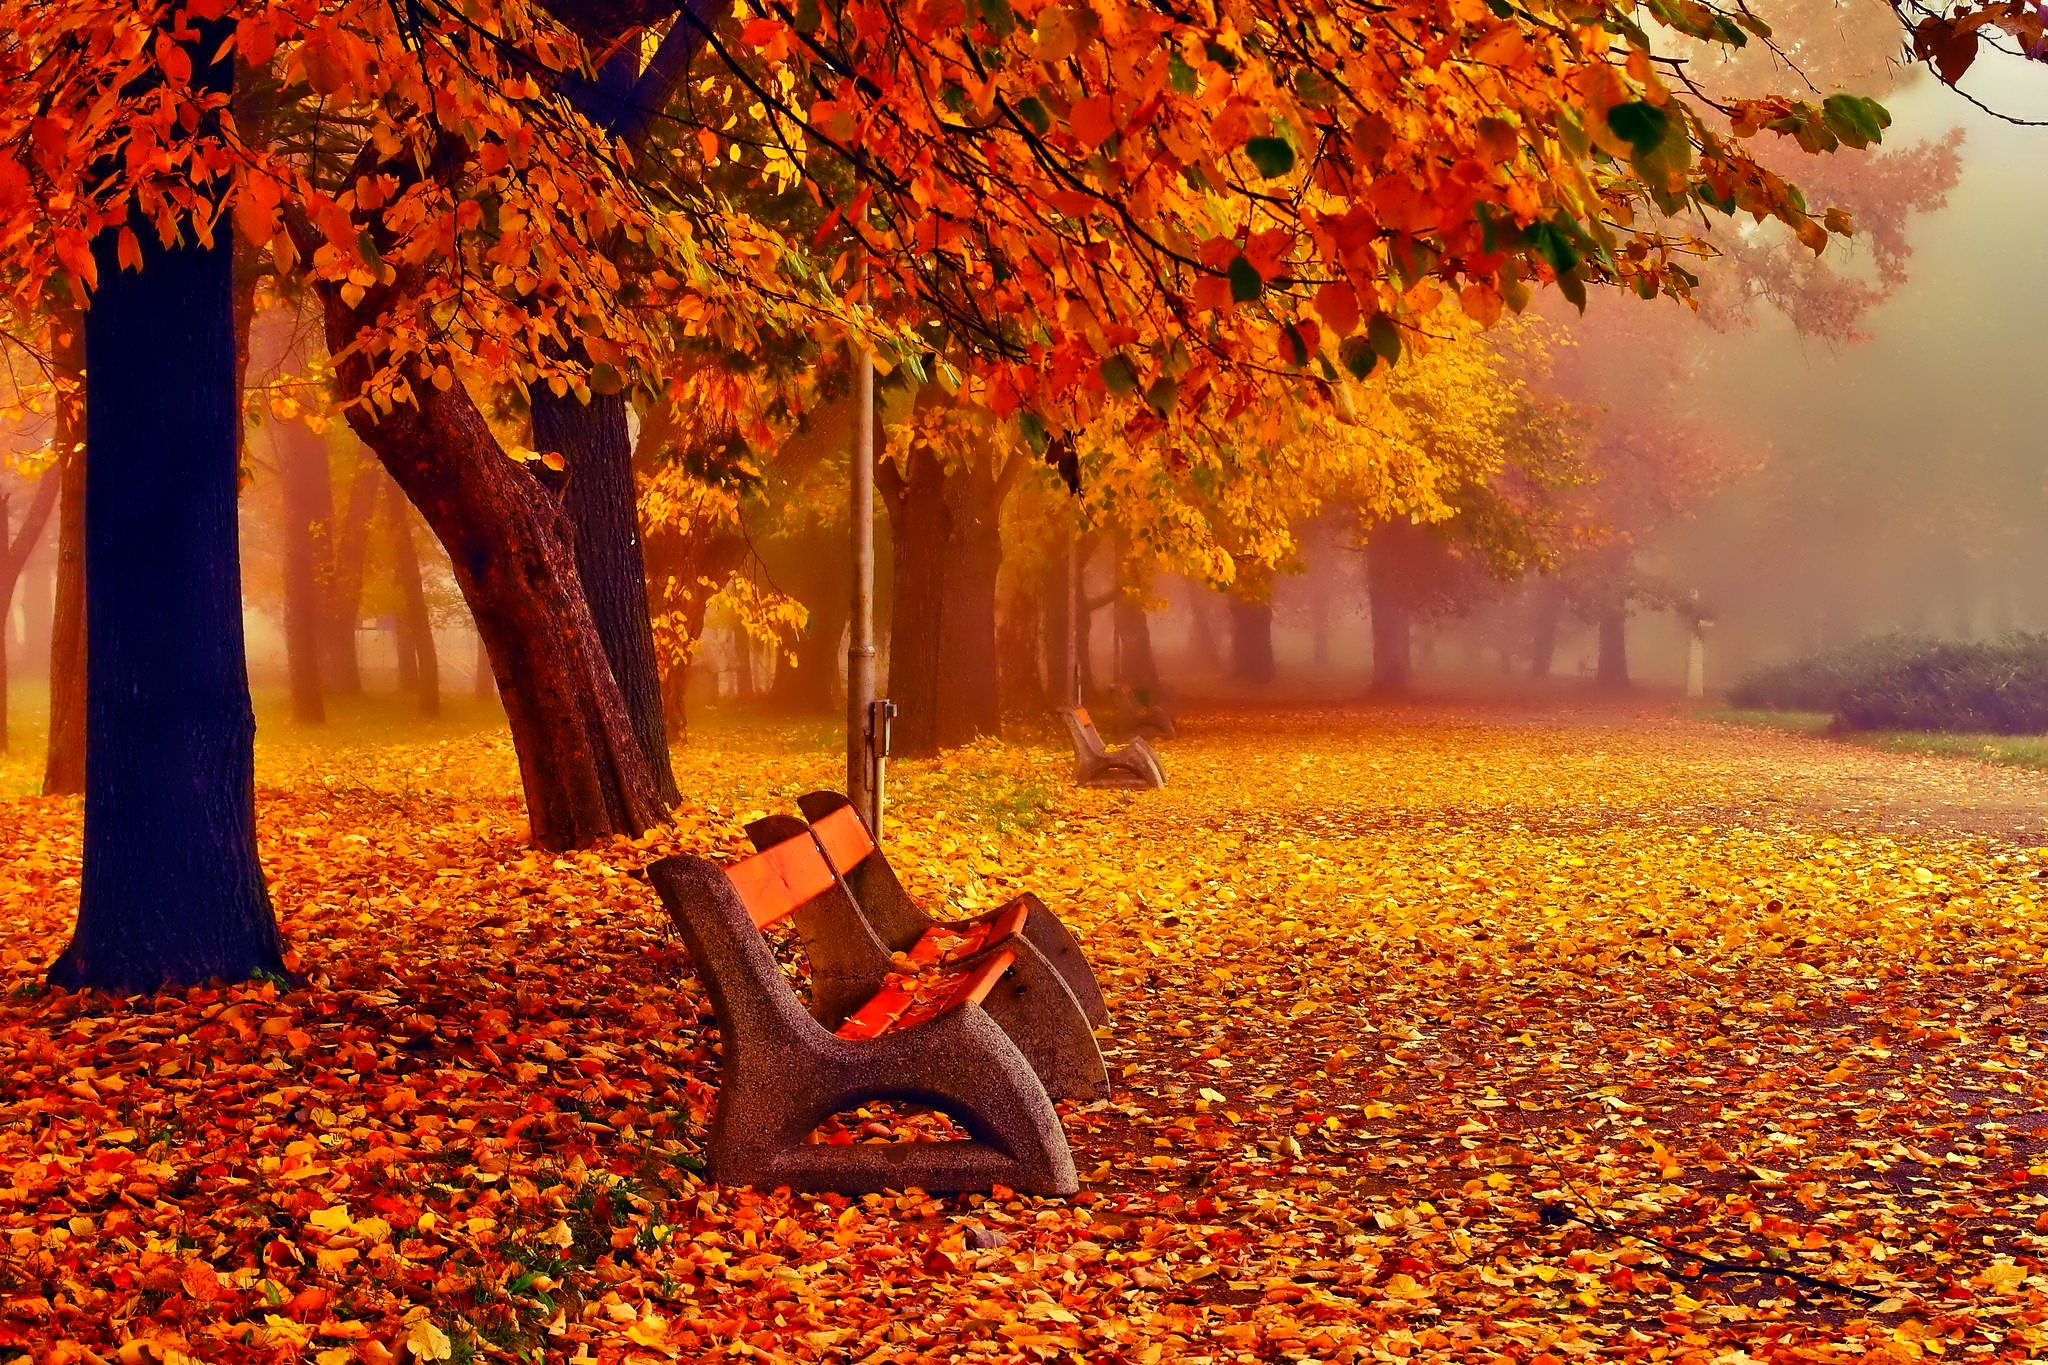 November Wallpaper 1 Download Free Awesome HD Backgrounds For